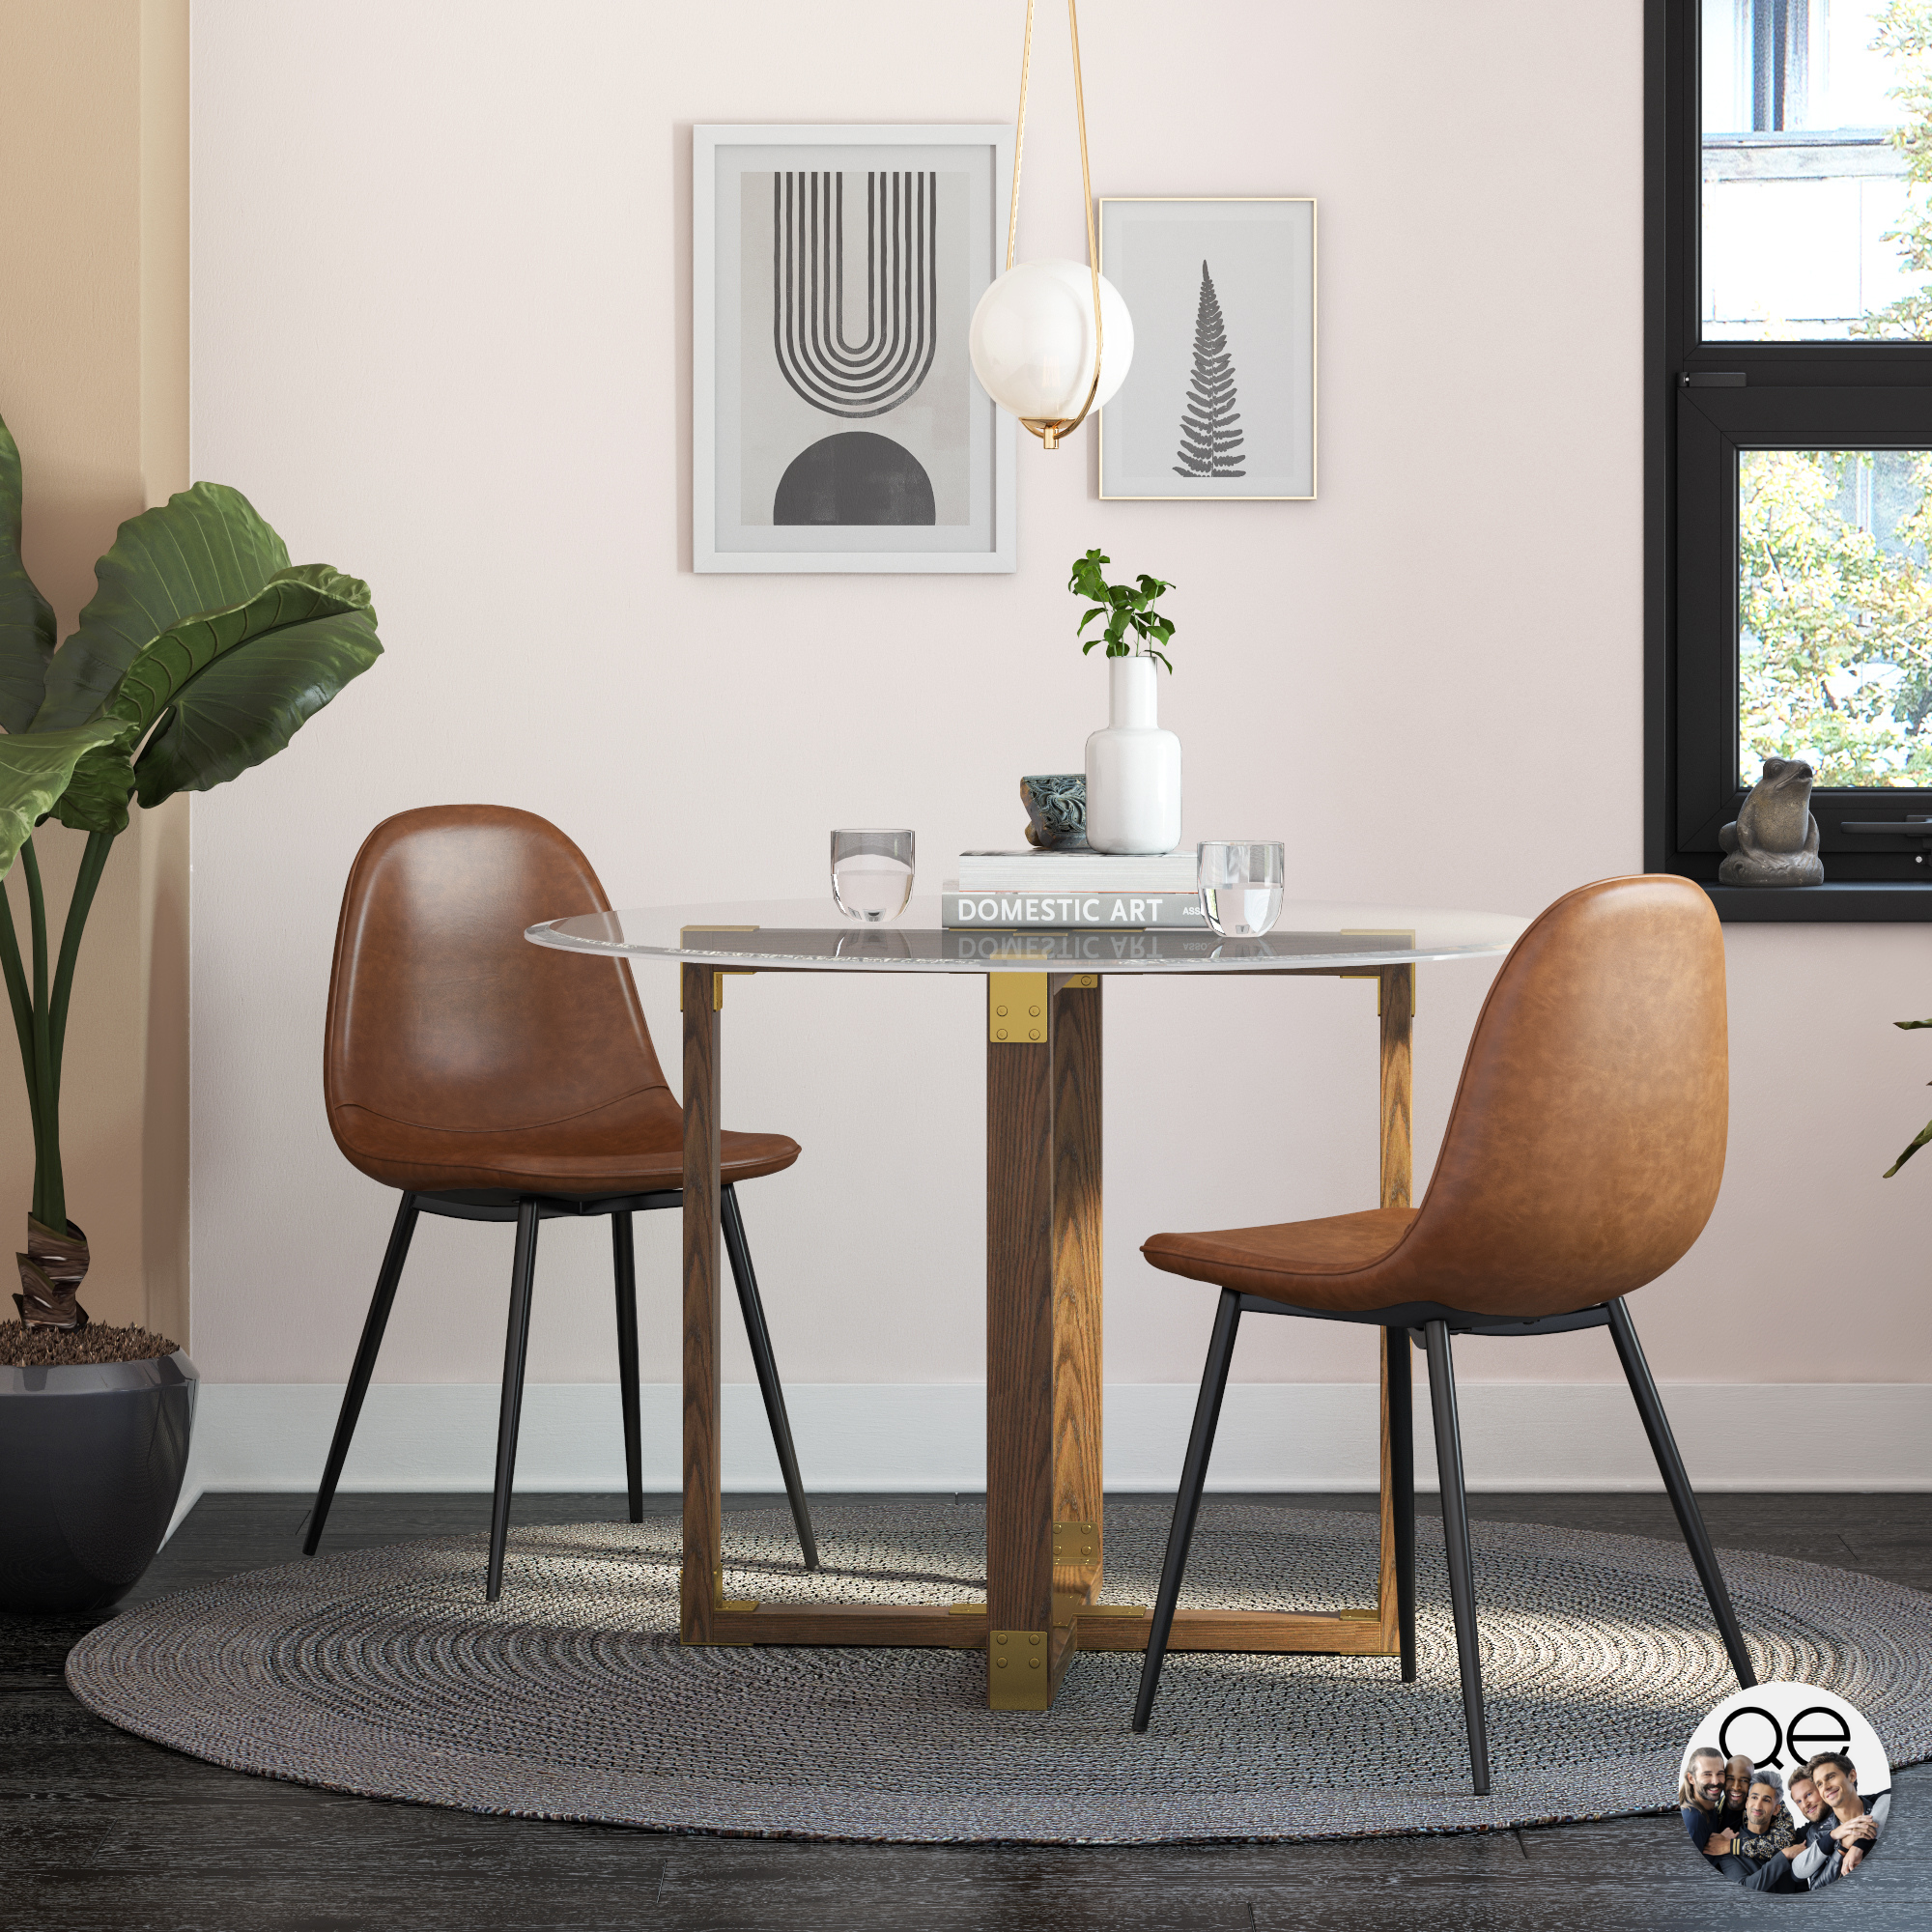 Queer Eye Coltin Upholstered Mid Century Modern Dining Chair Multiple Options Available Walmart Com Walmart Com,What Is The Best Color For A Metal Roof